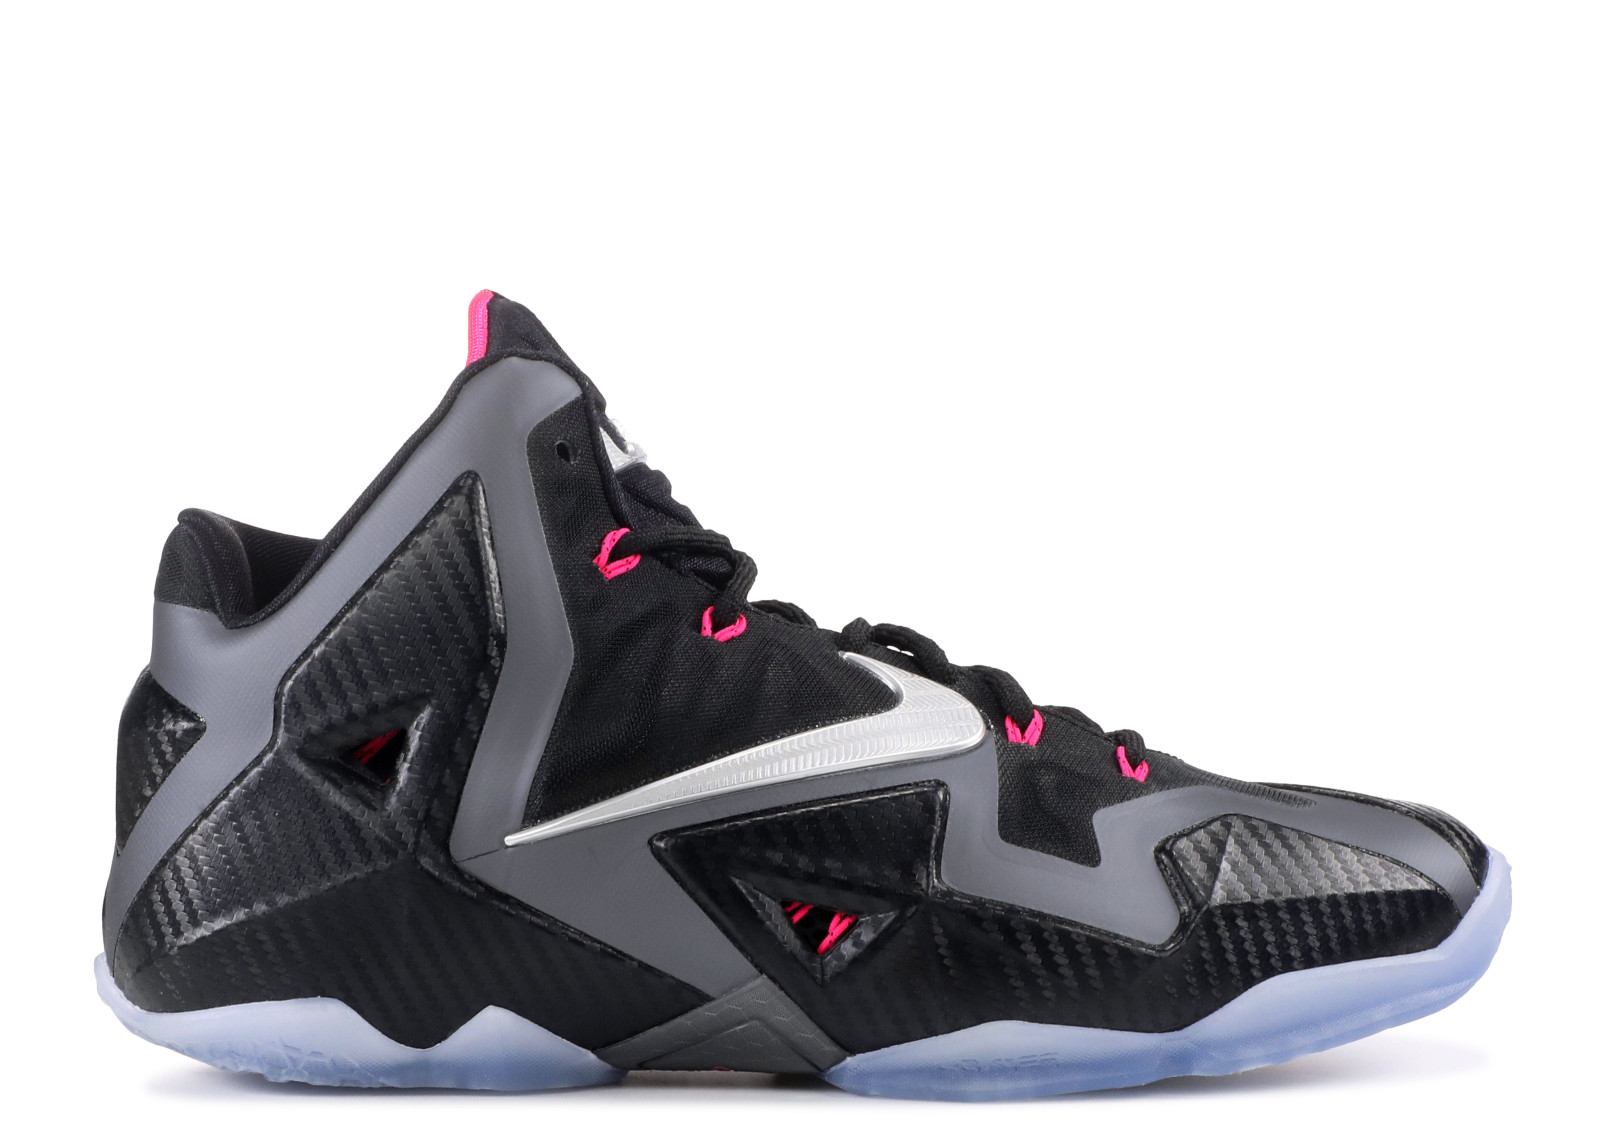 watch 46c3c 956d0 ... sweden nike men lebron 11 miami night 616175 003 size 8.5 0c6e3 51f12